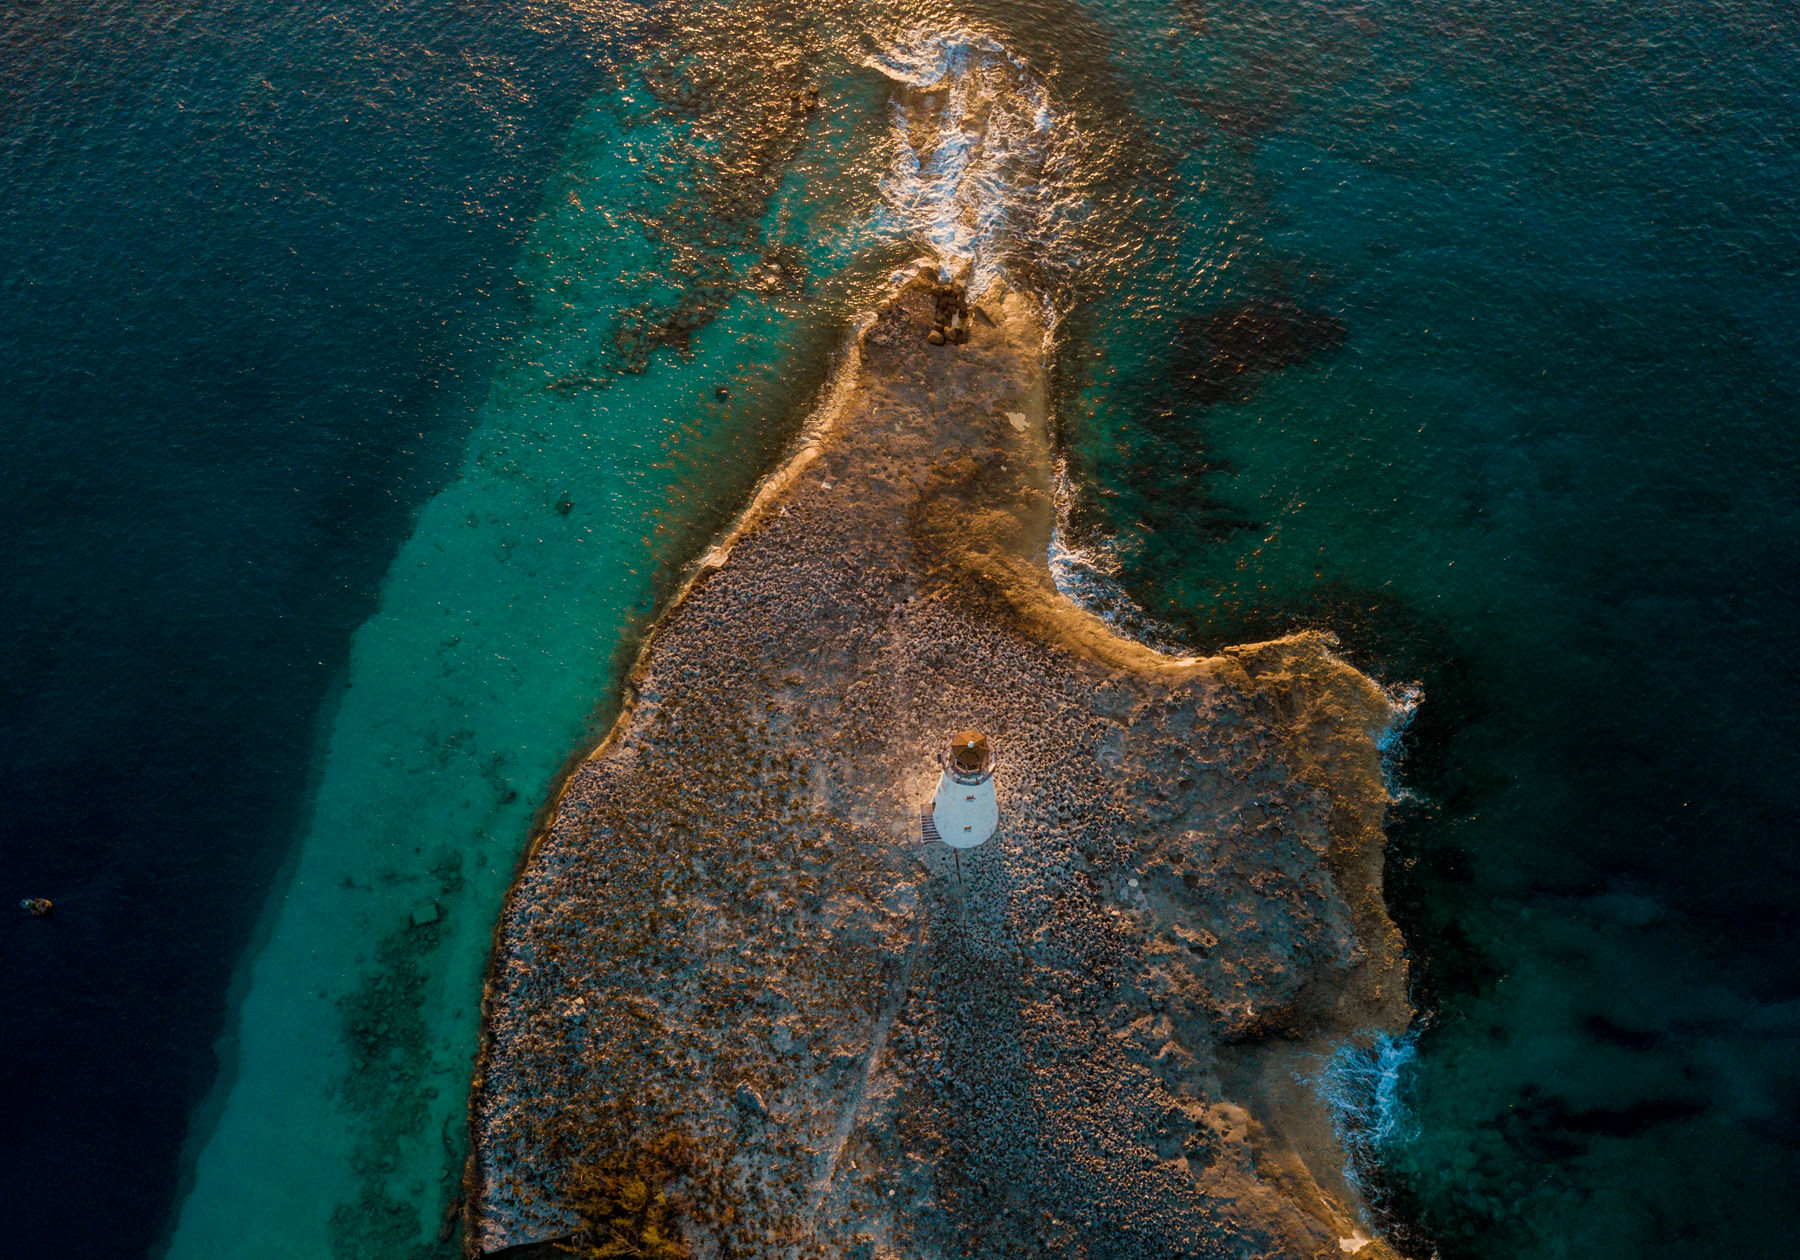 lighthouse in bahamas photo by drone